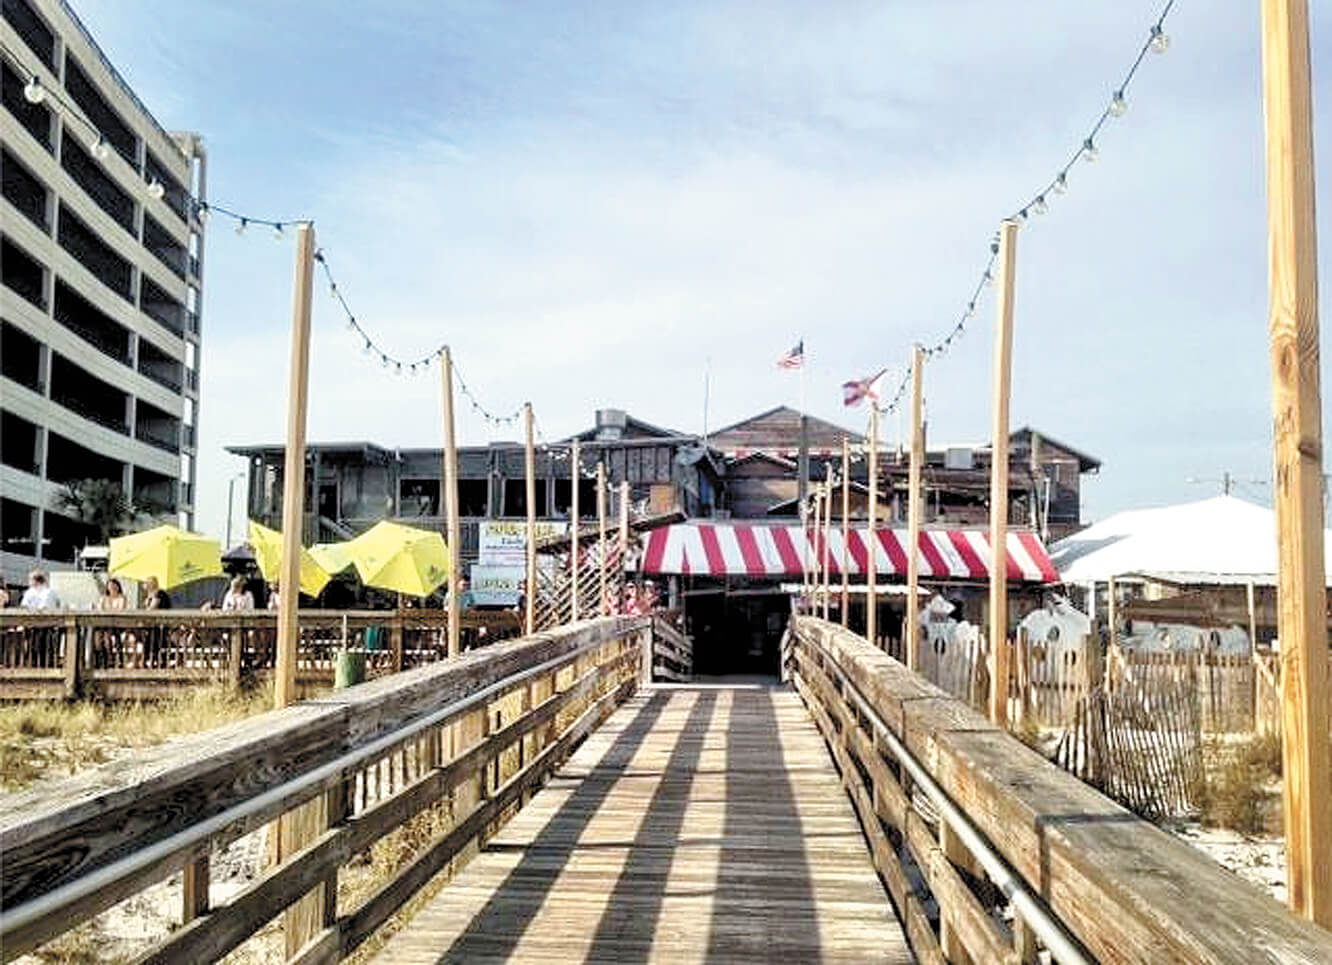 Flora-Bama sues entertainment network over trademark